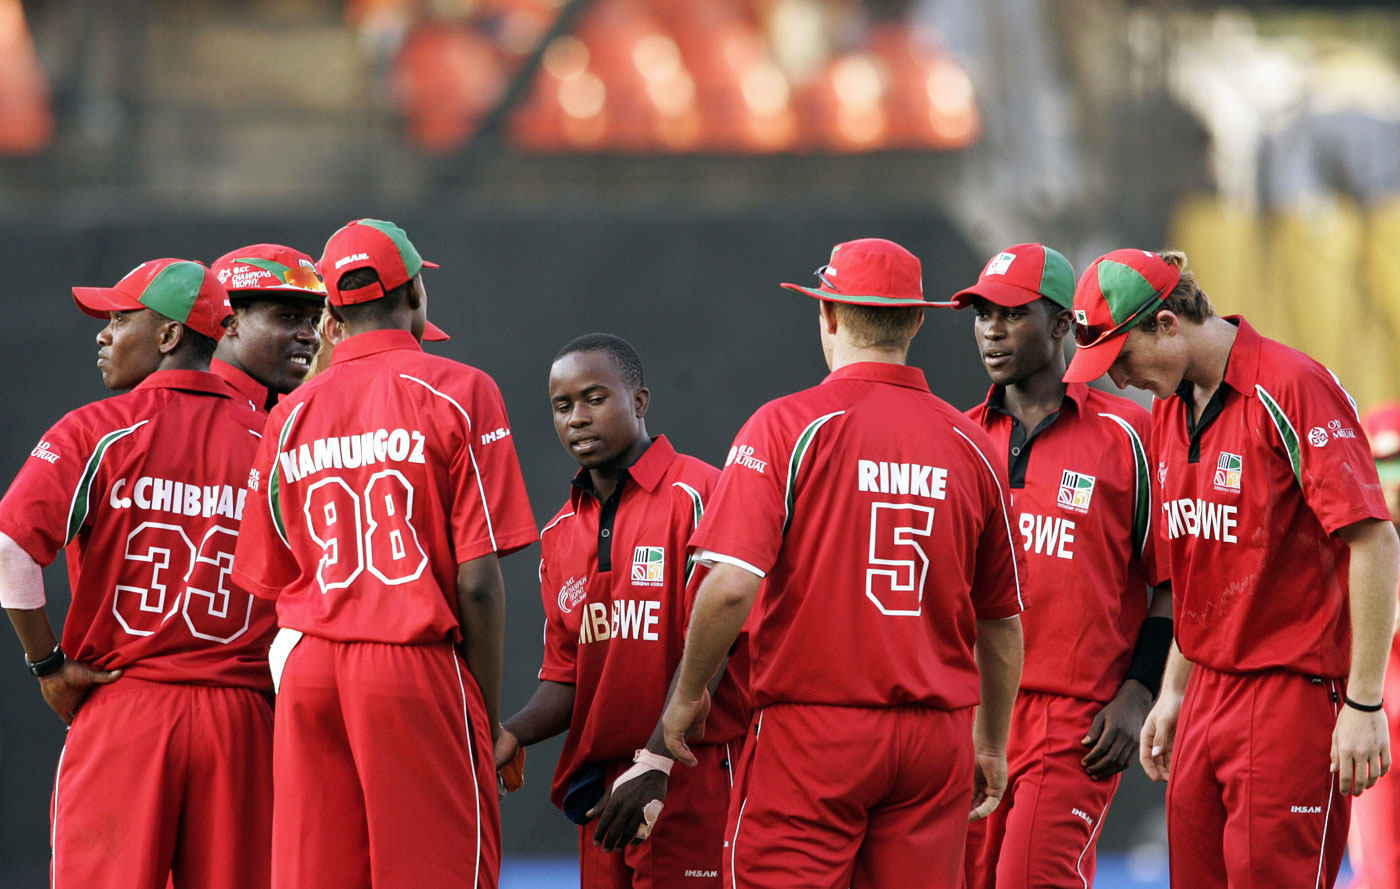 Zimbabwe's players haven't always been able to stand together to leverage better remuneration from the board